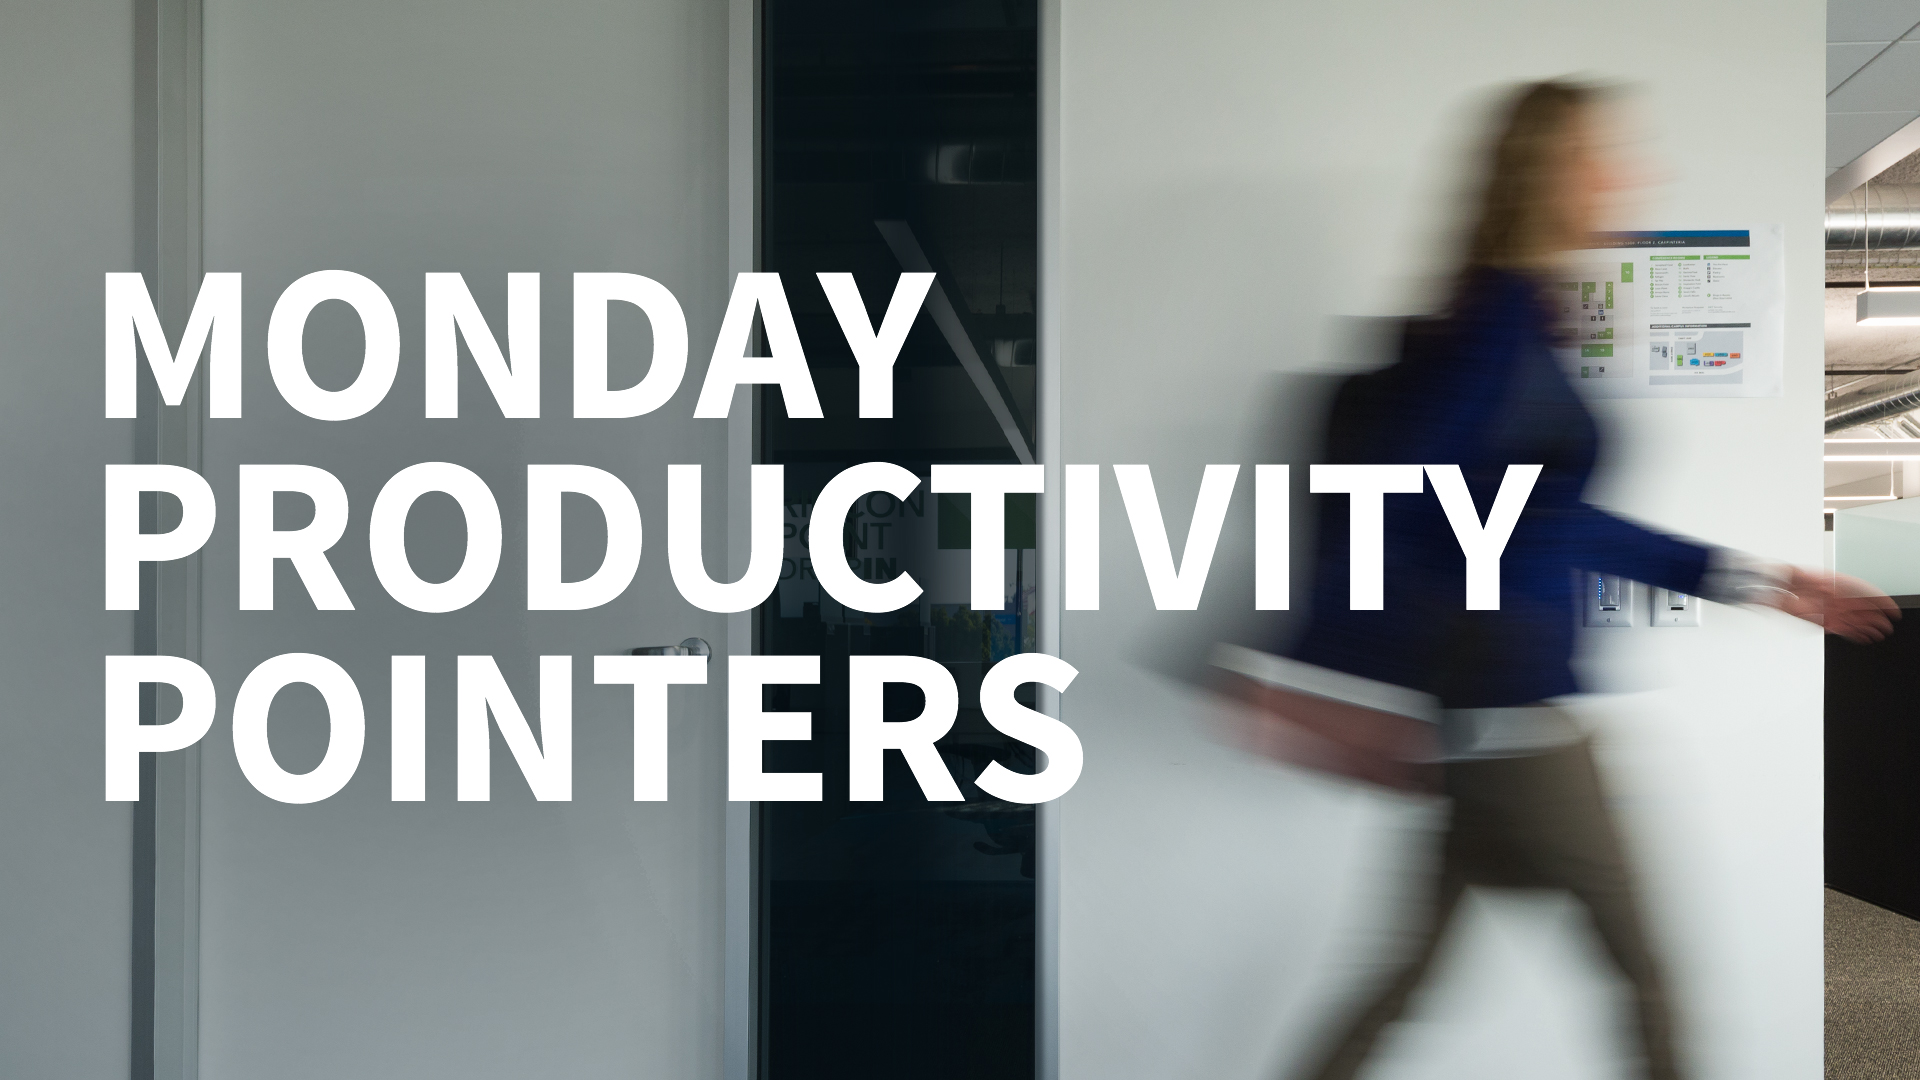 Make text bigger in Windows: Monday Productivity Pointers